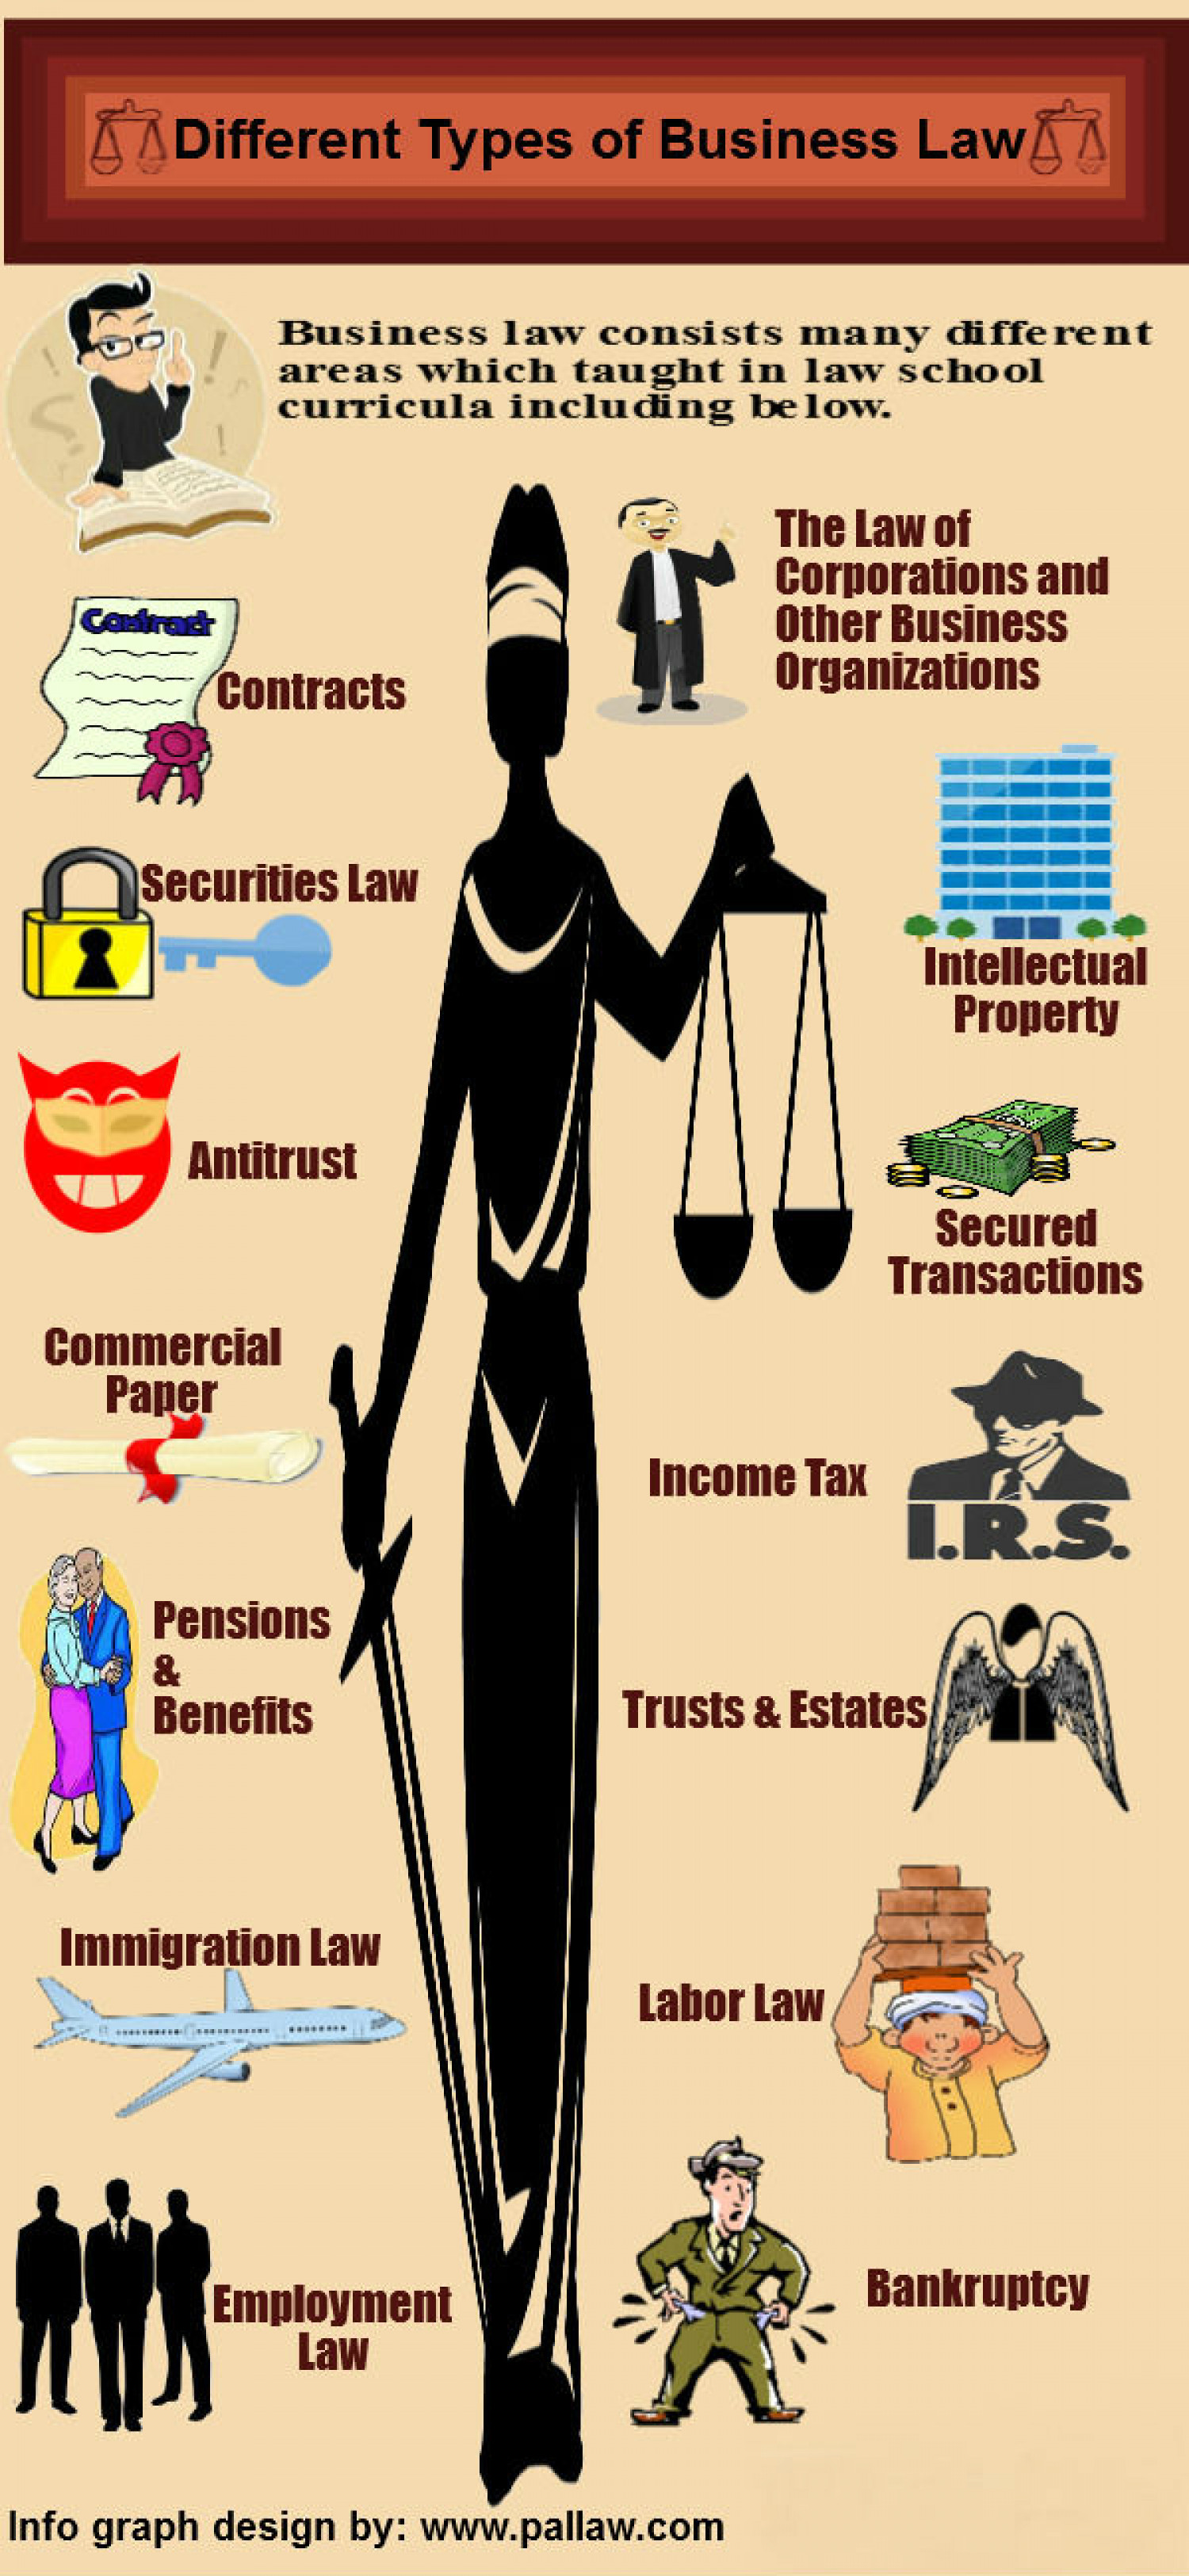 Different Types of Business Law Infographic